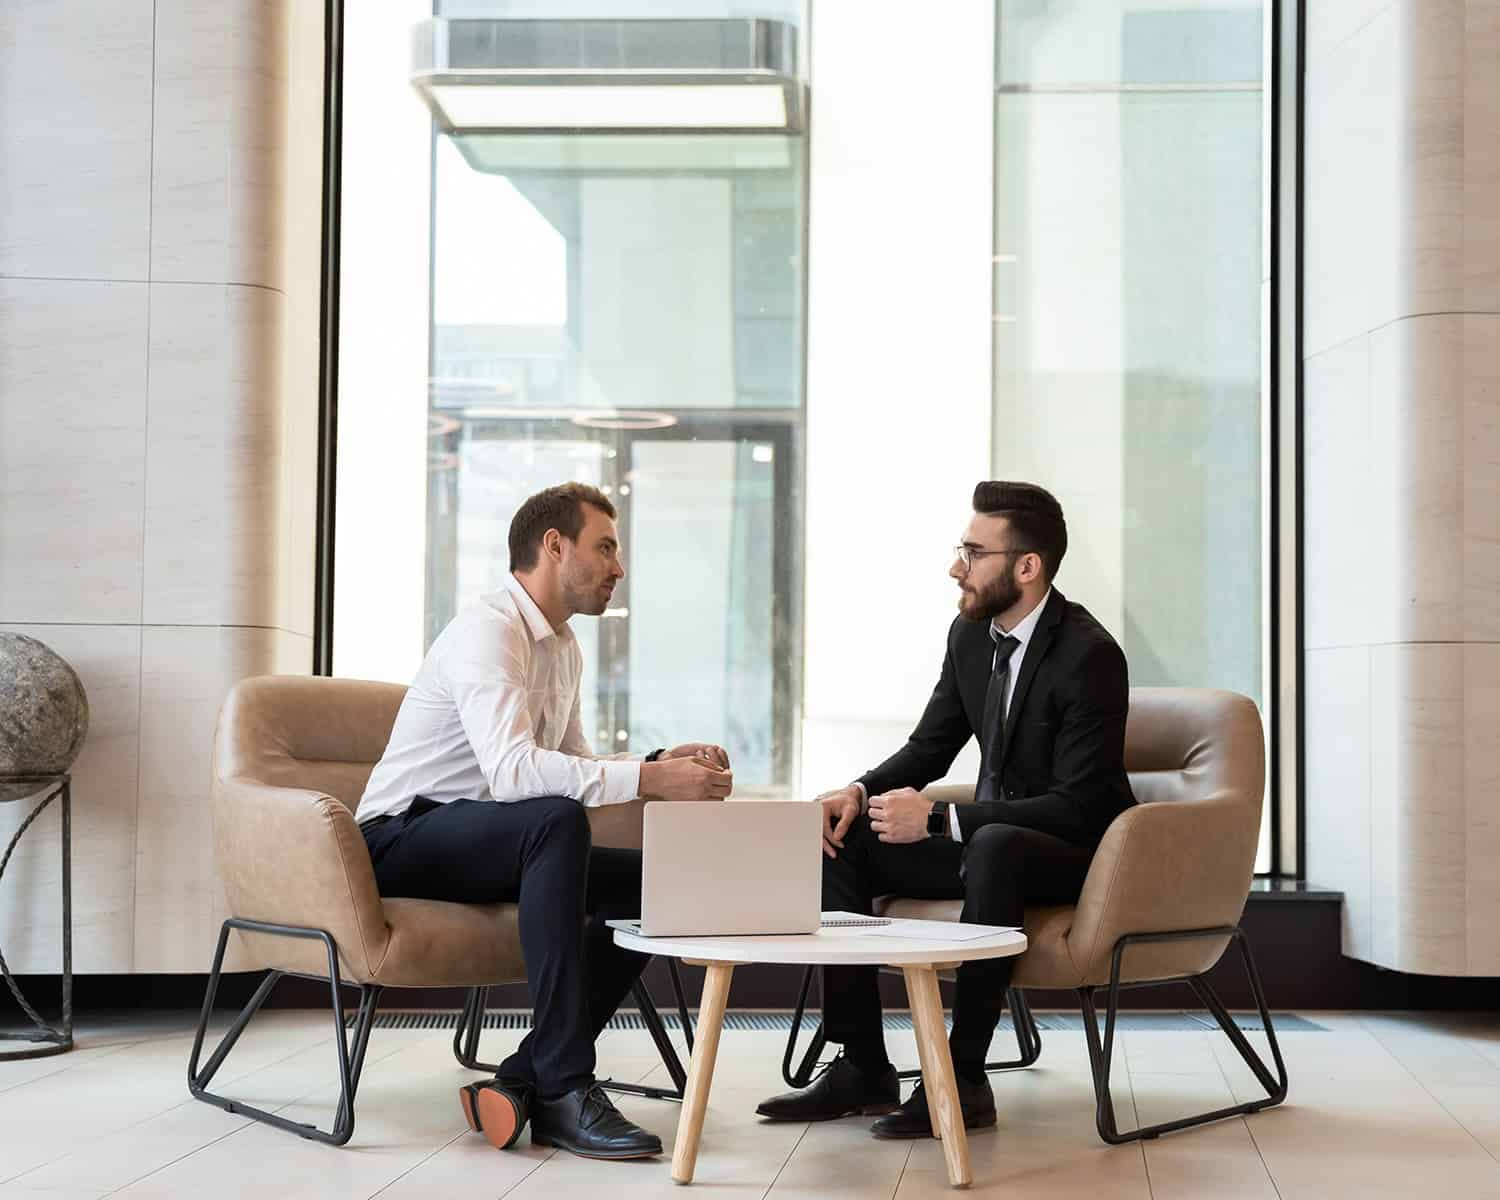 6 Tips for a Great Investor Interview (From Some of the World's Leading Venture Capitalists)